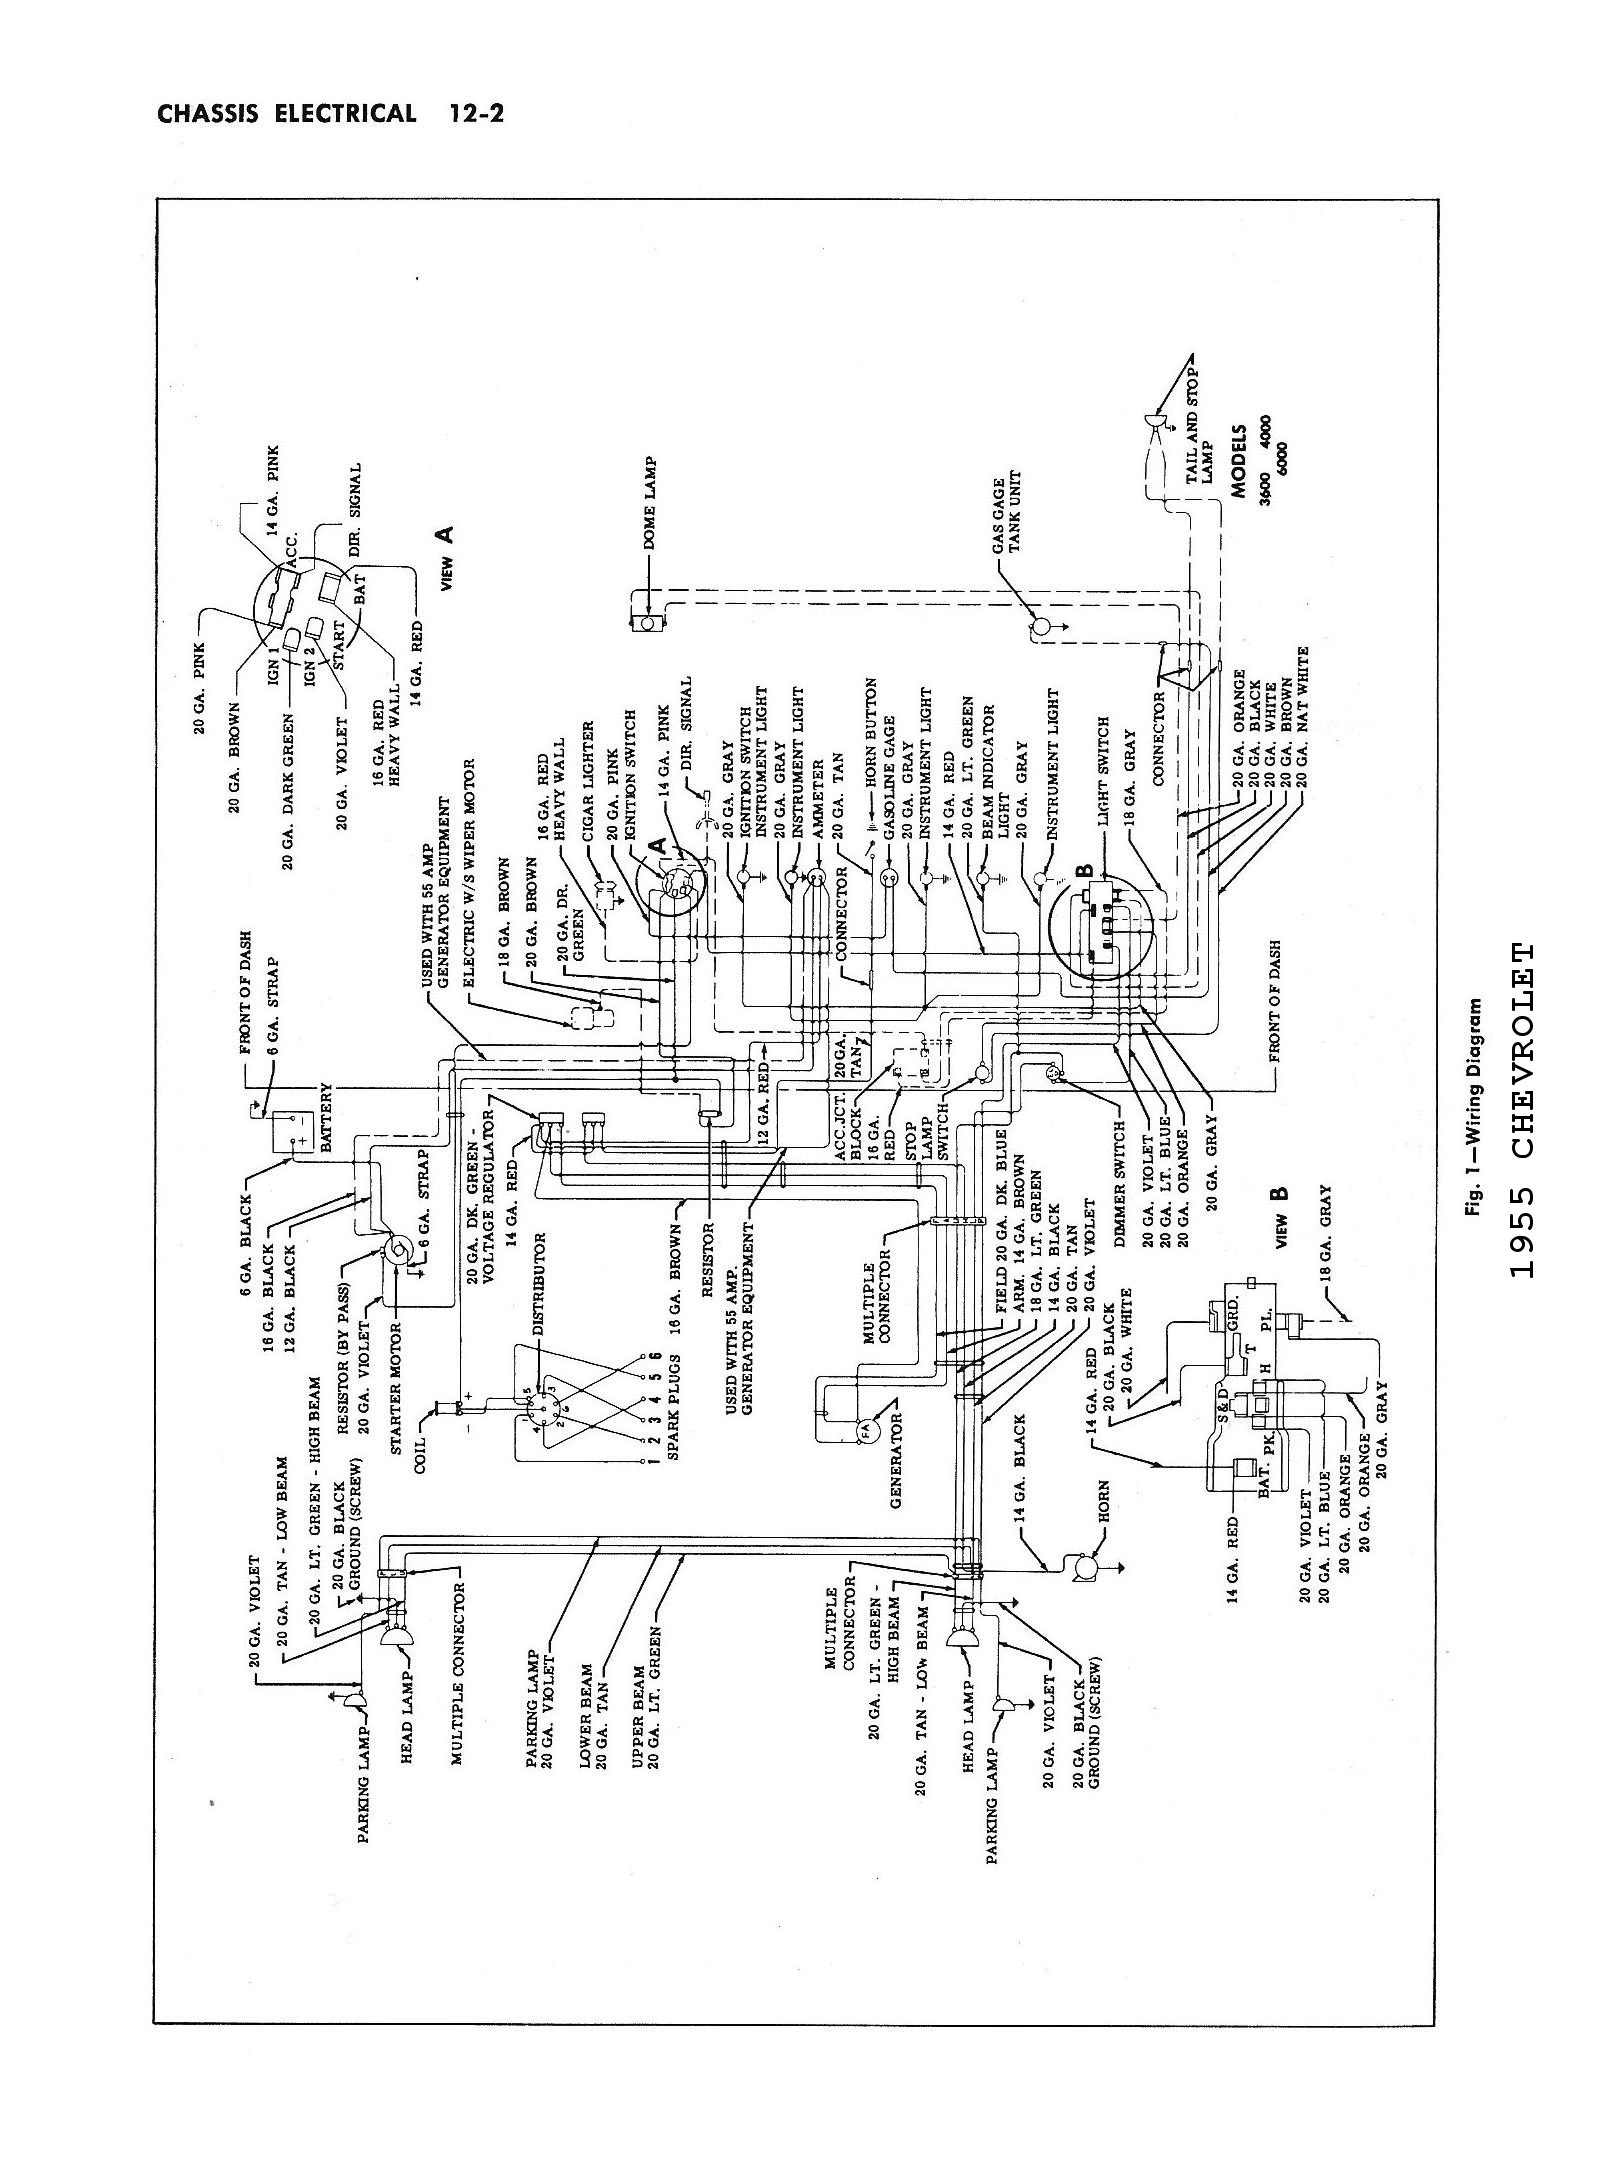 55ctsm1202 chevy wiring diagrams chevy truck wiring harness diagram at couponss.co